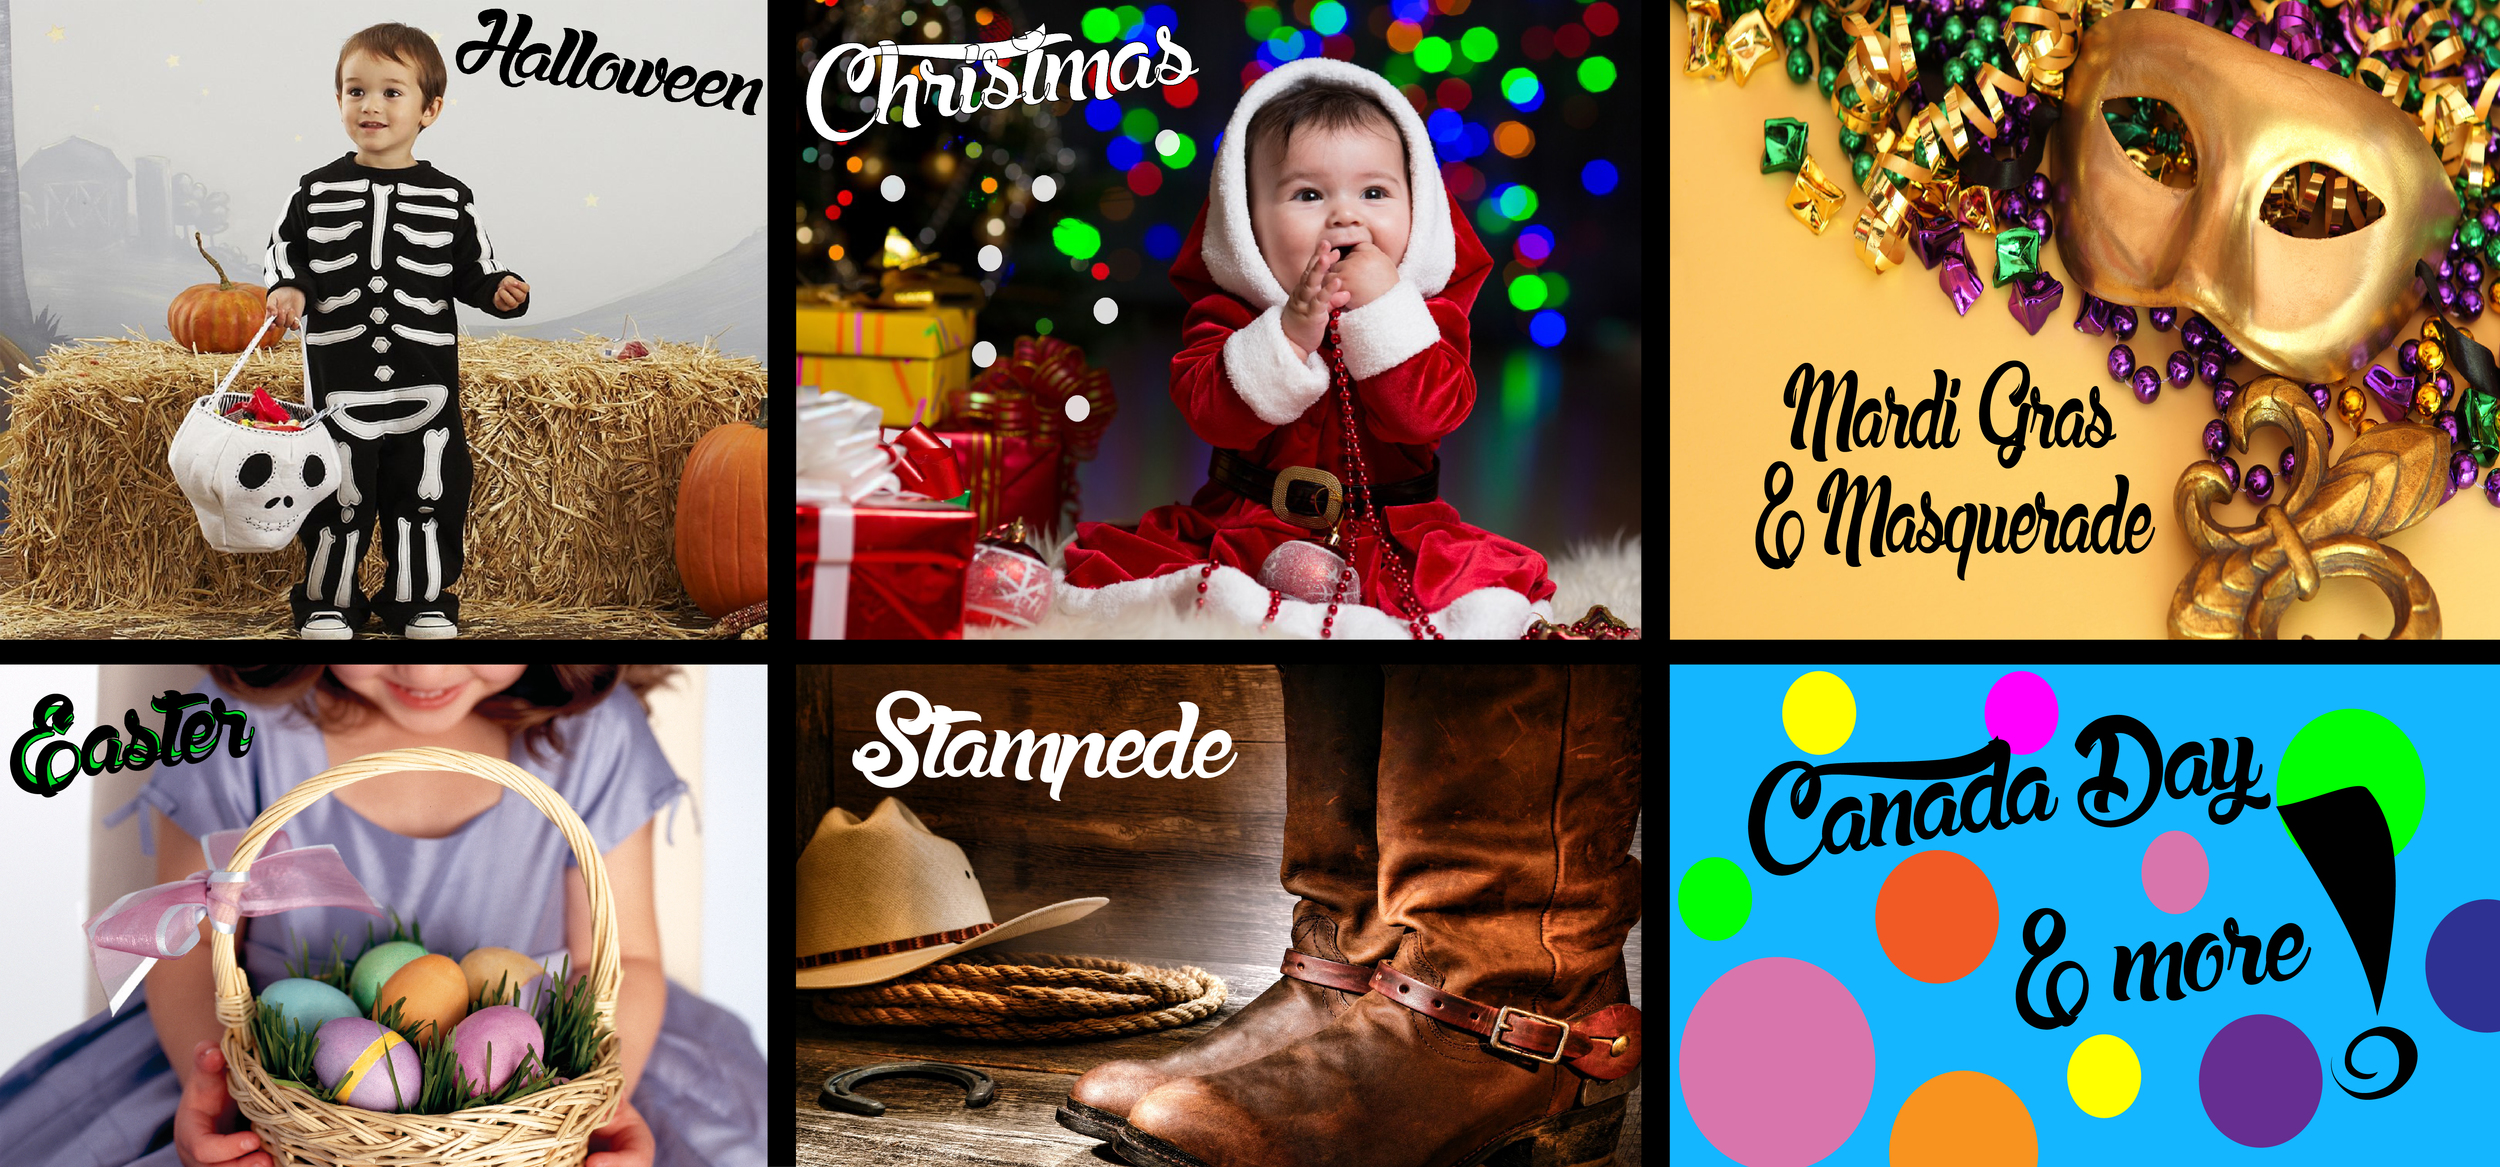 Holidays-Themes Collage-01.jpg